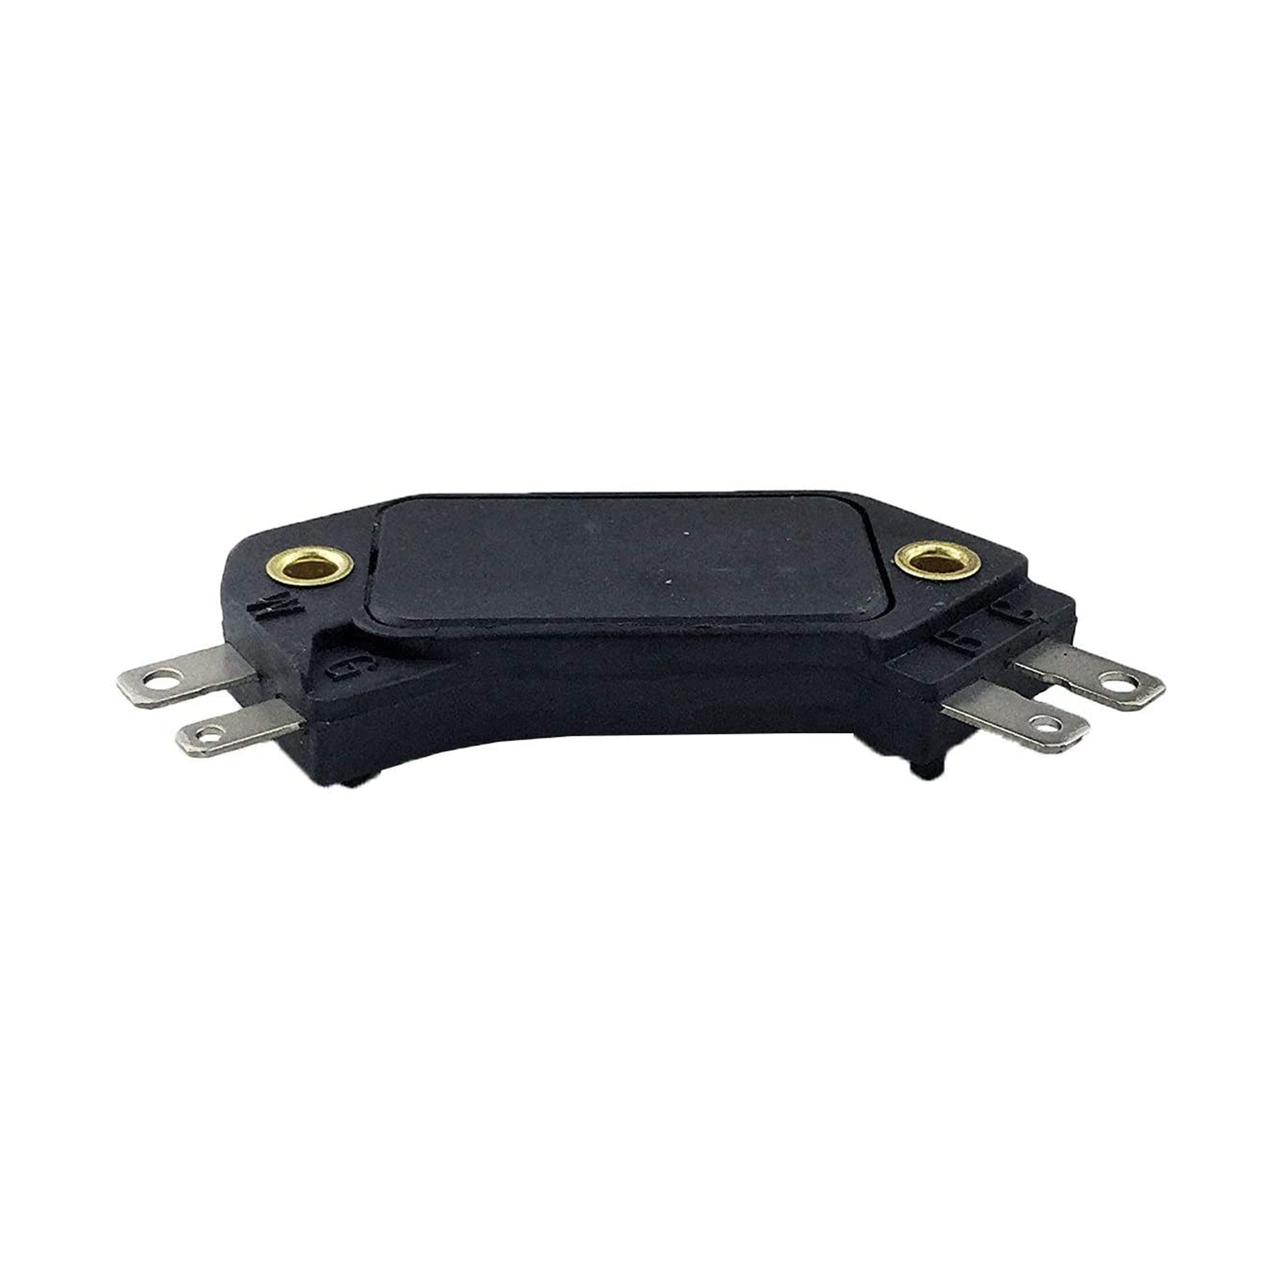 A-Team Performance 4 pin IGNITION MODULE Replacement for HEI Distributors CHEVY GM OLDS PONTIAC